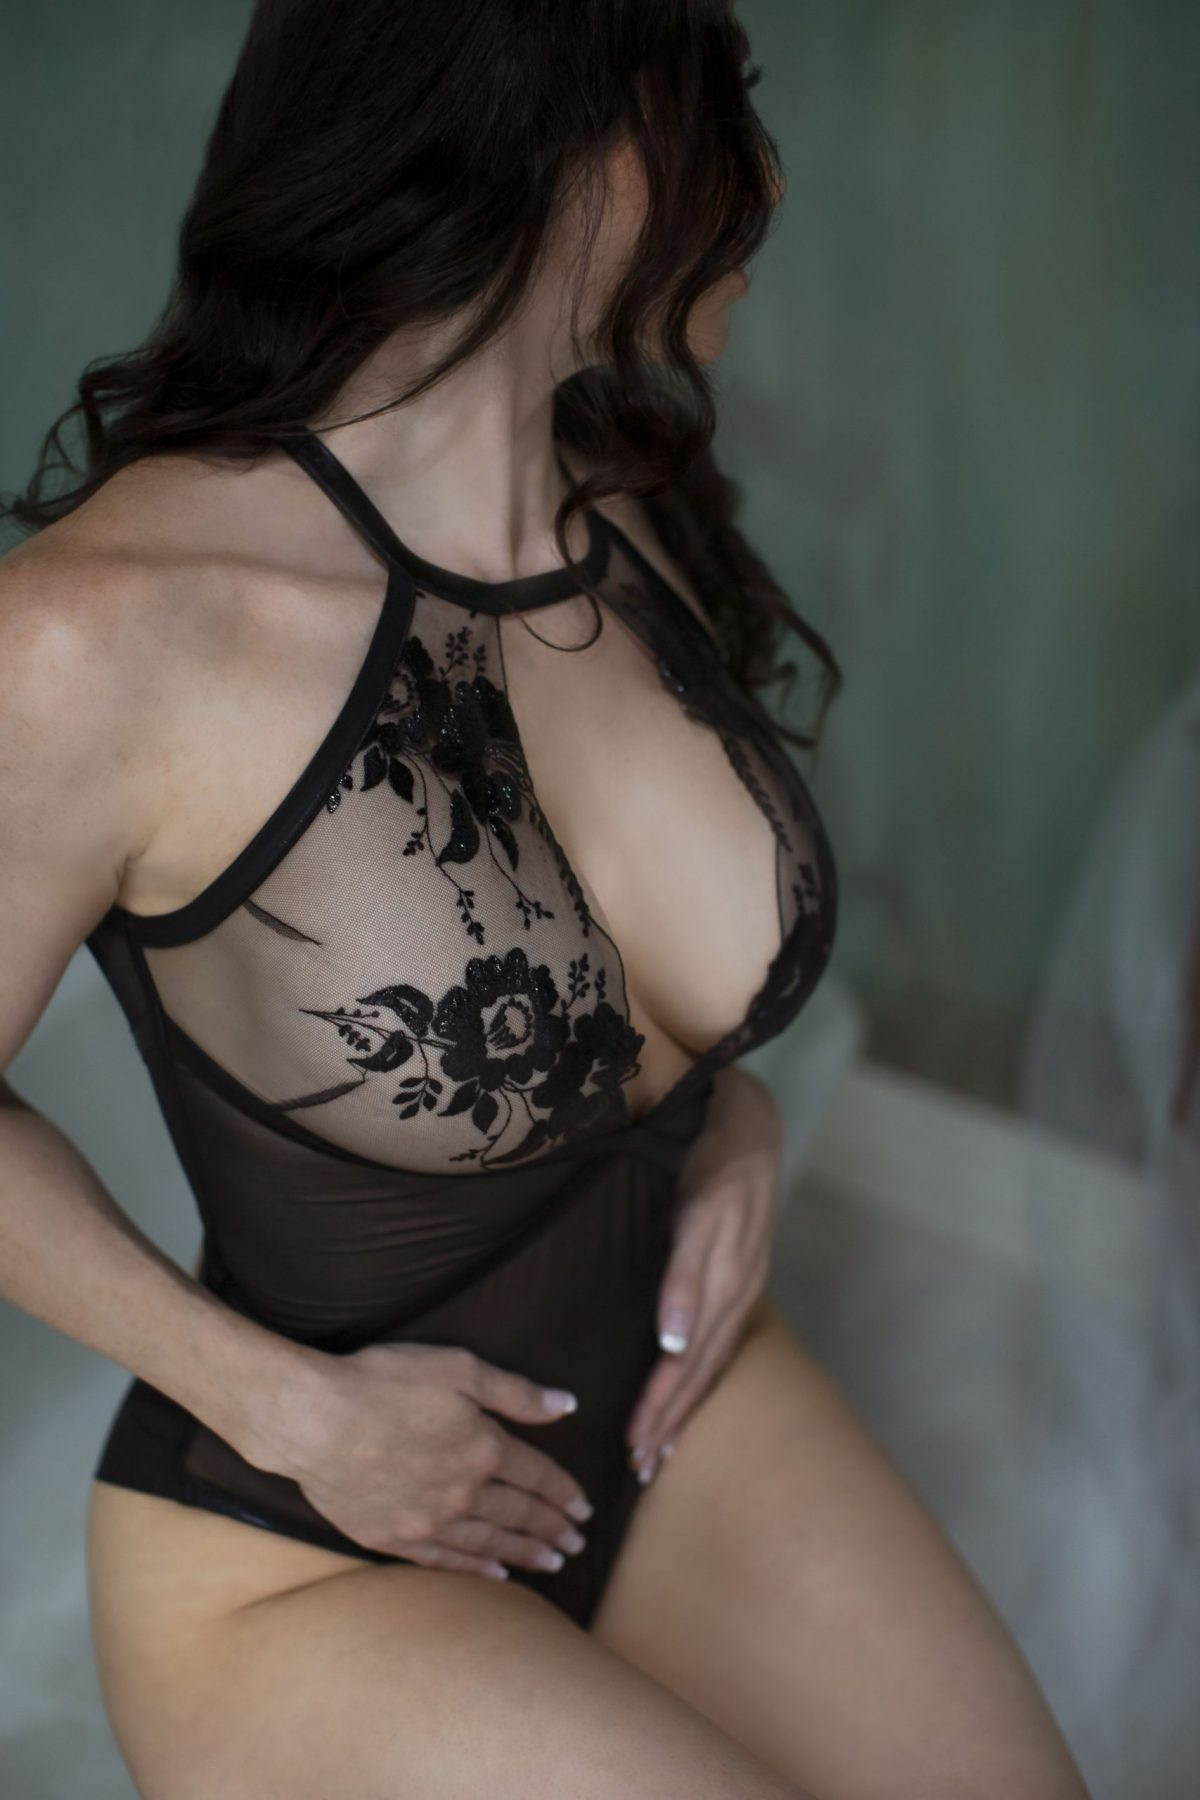 Toronto escorts companion upscale Rebecca Interests Duo Couple-friendly Disability-friendly Non-smoking Age Mature Figure Slender Curvy Tall Enhanced Raven-Haired Brunette European Tattoos Large Arrival